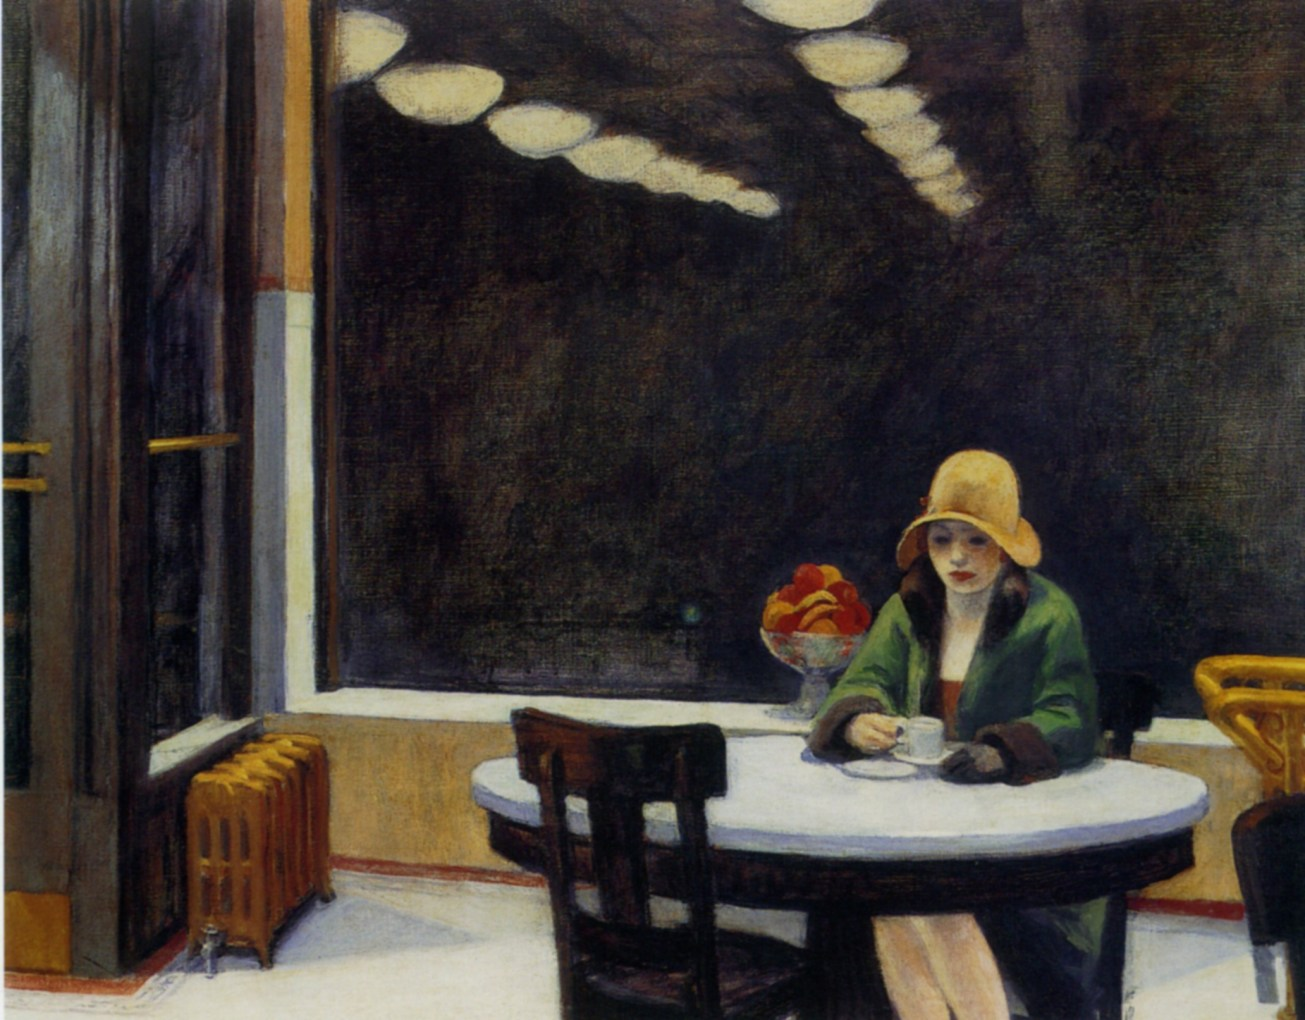 1927-edward-hopper-automat-american-painting-copy.jpg